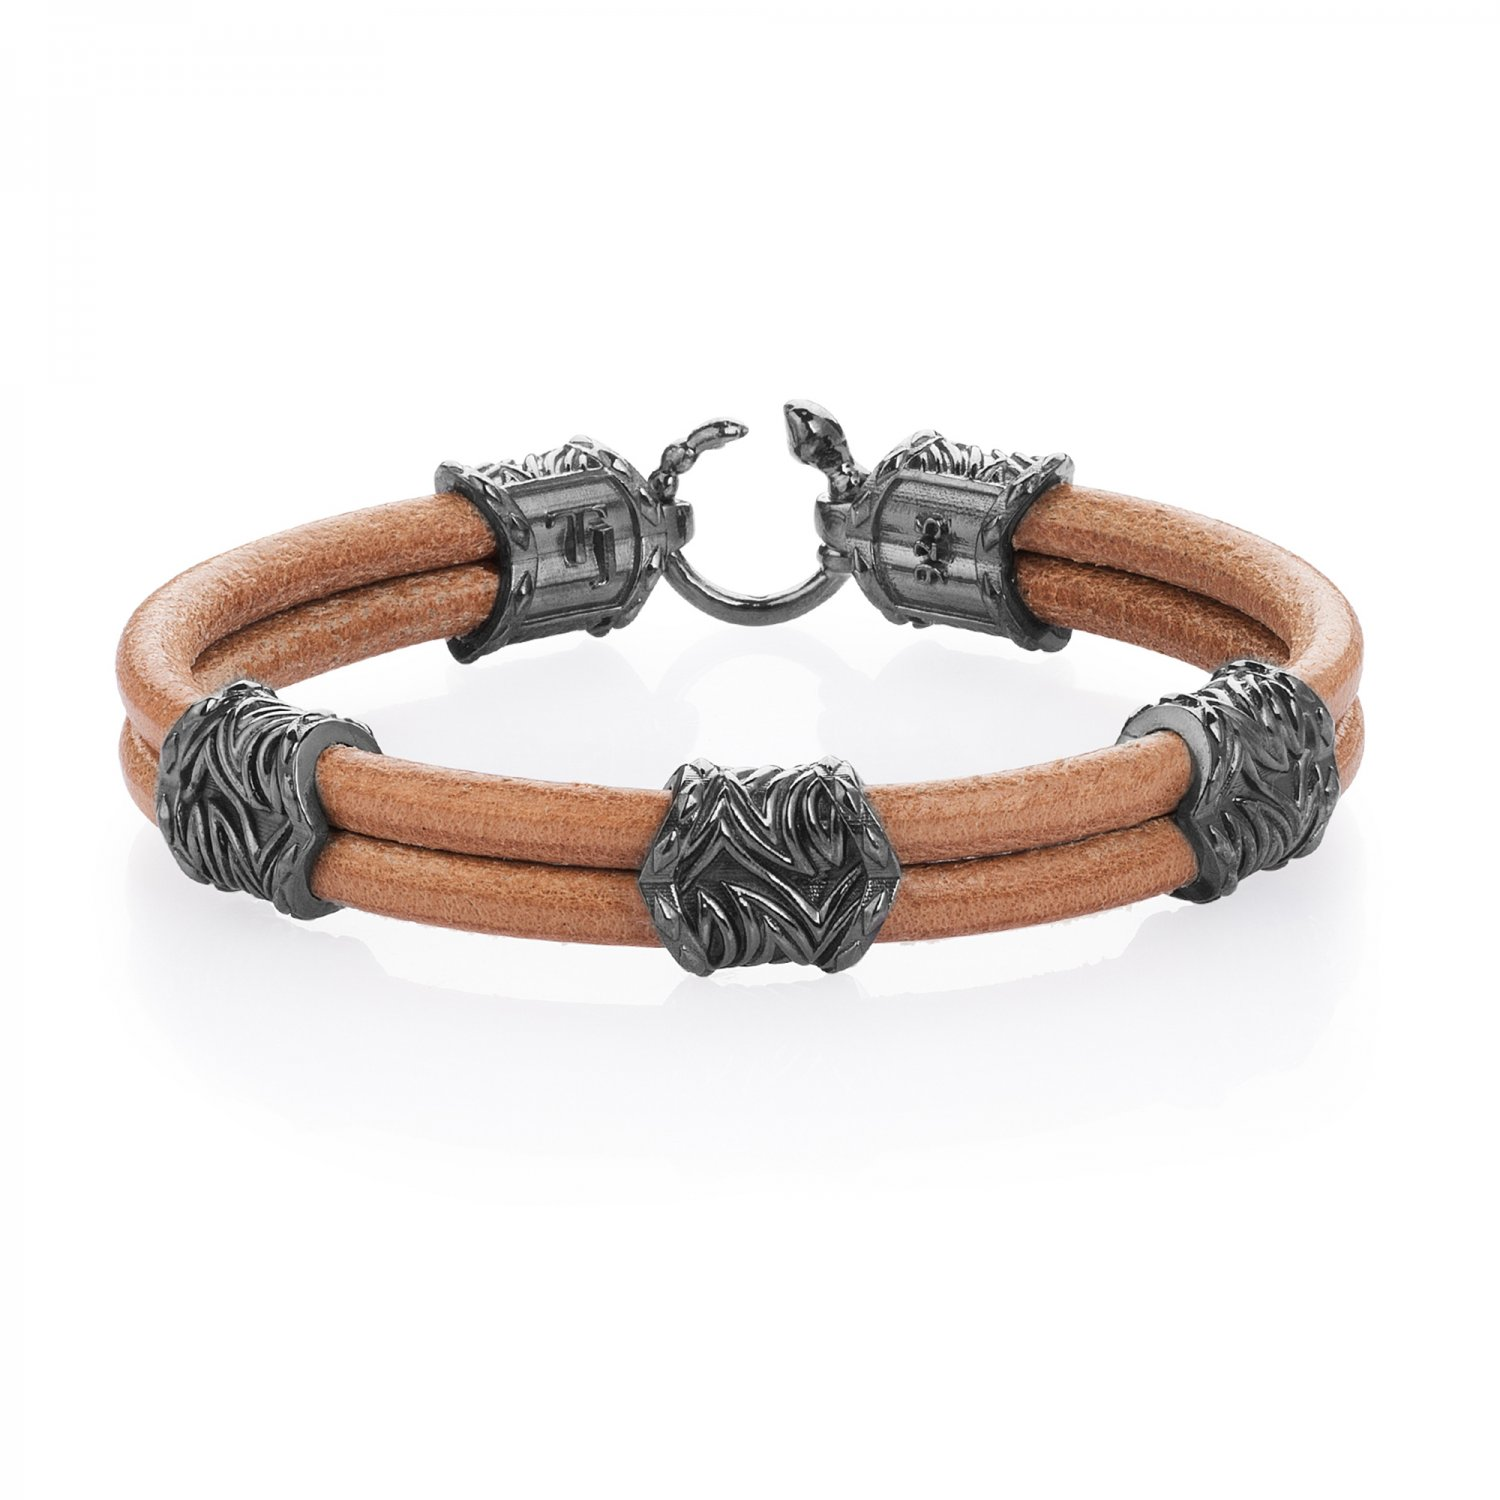 Sterling Silver Serpi Style Bracelet in Natural Beige Leather